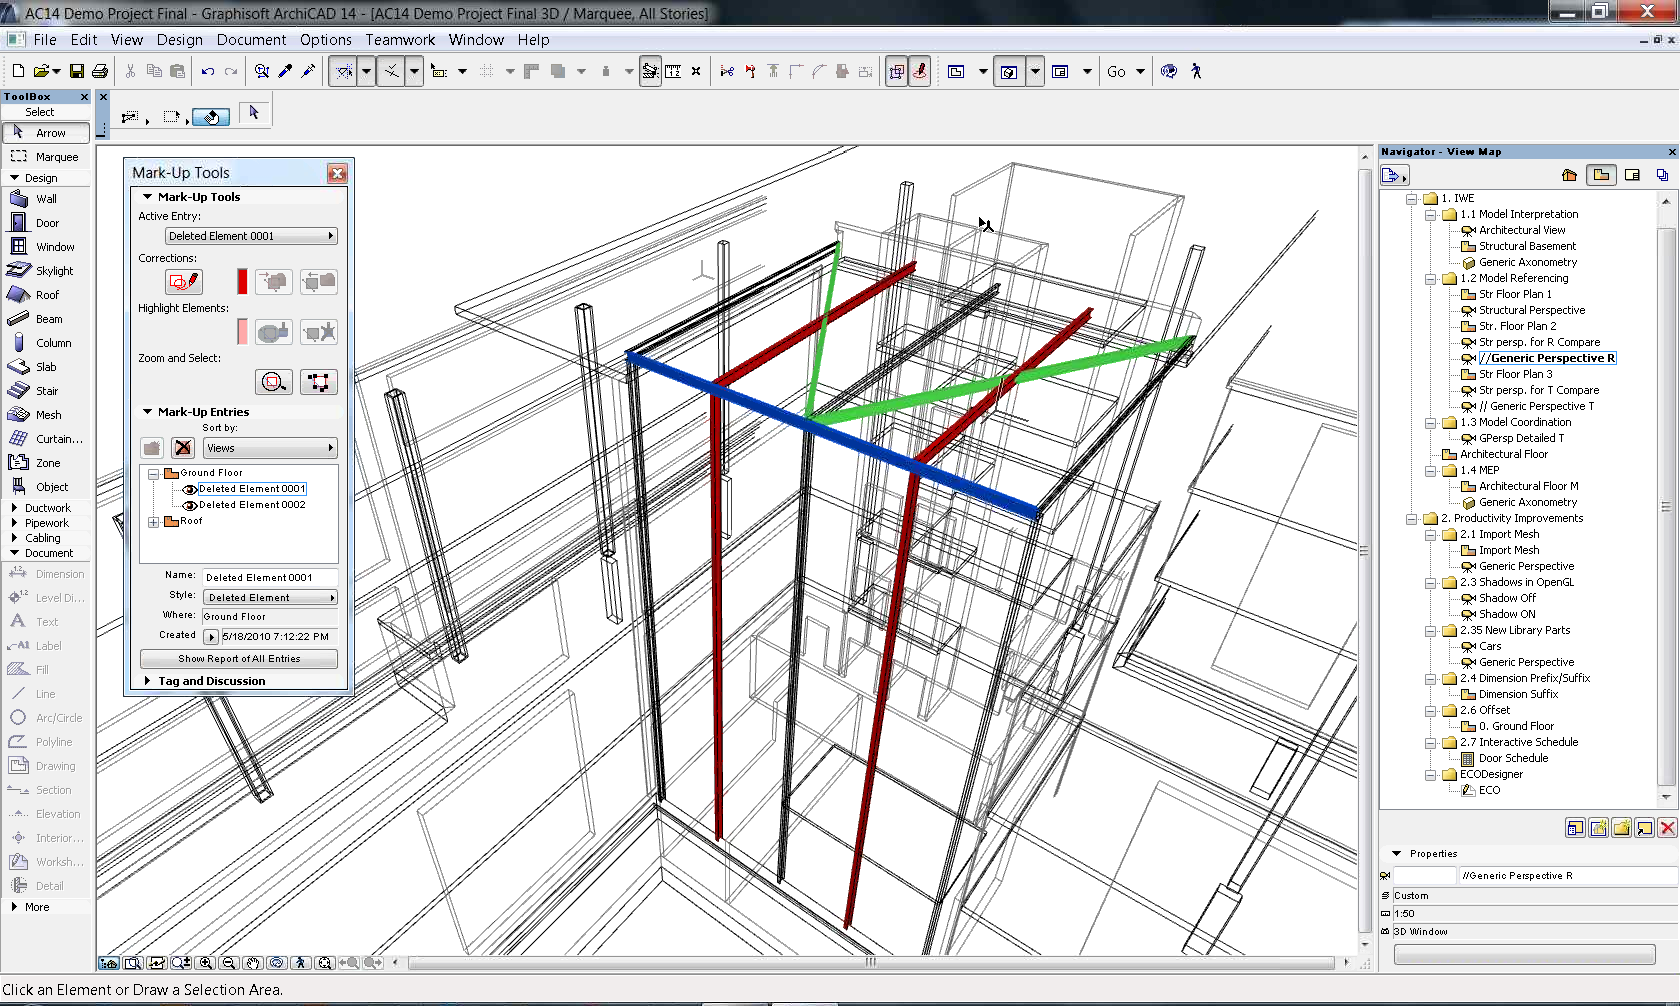 Download free Archicad Store Drawing In Project File - massfilecloud